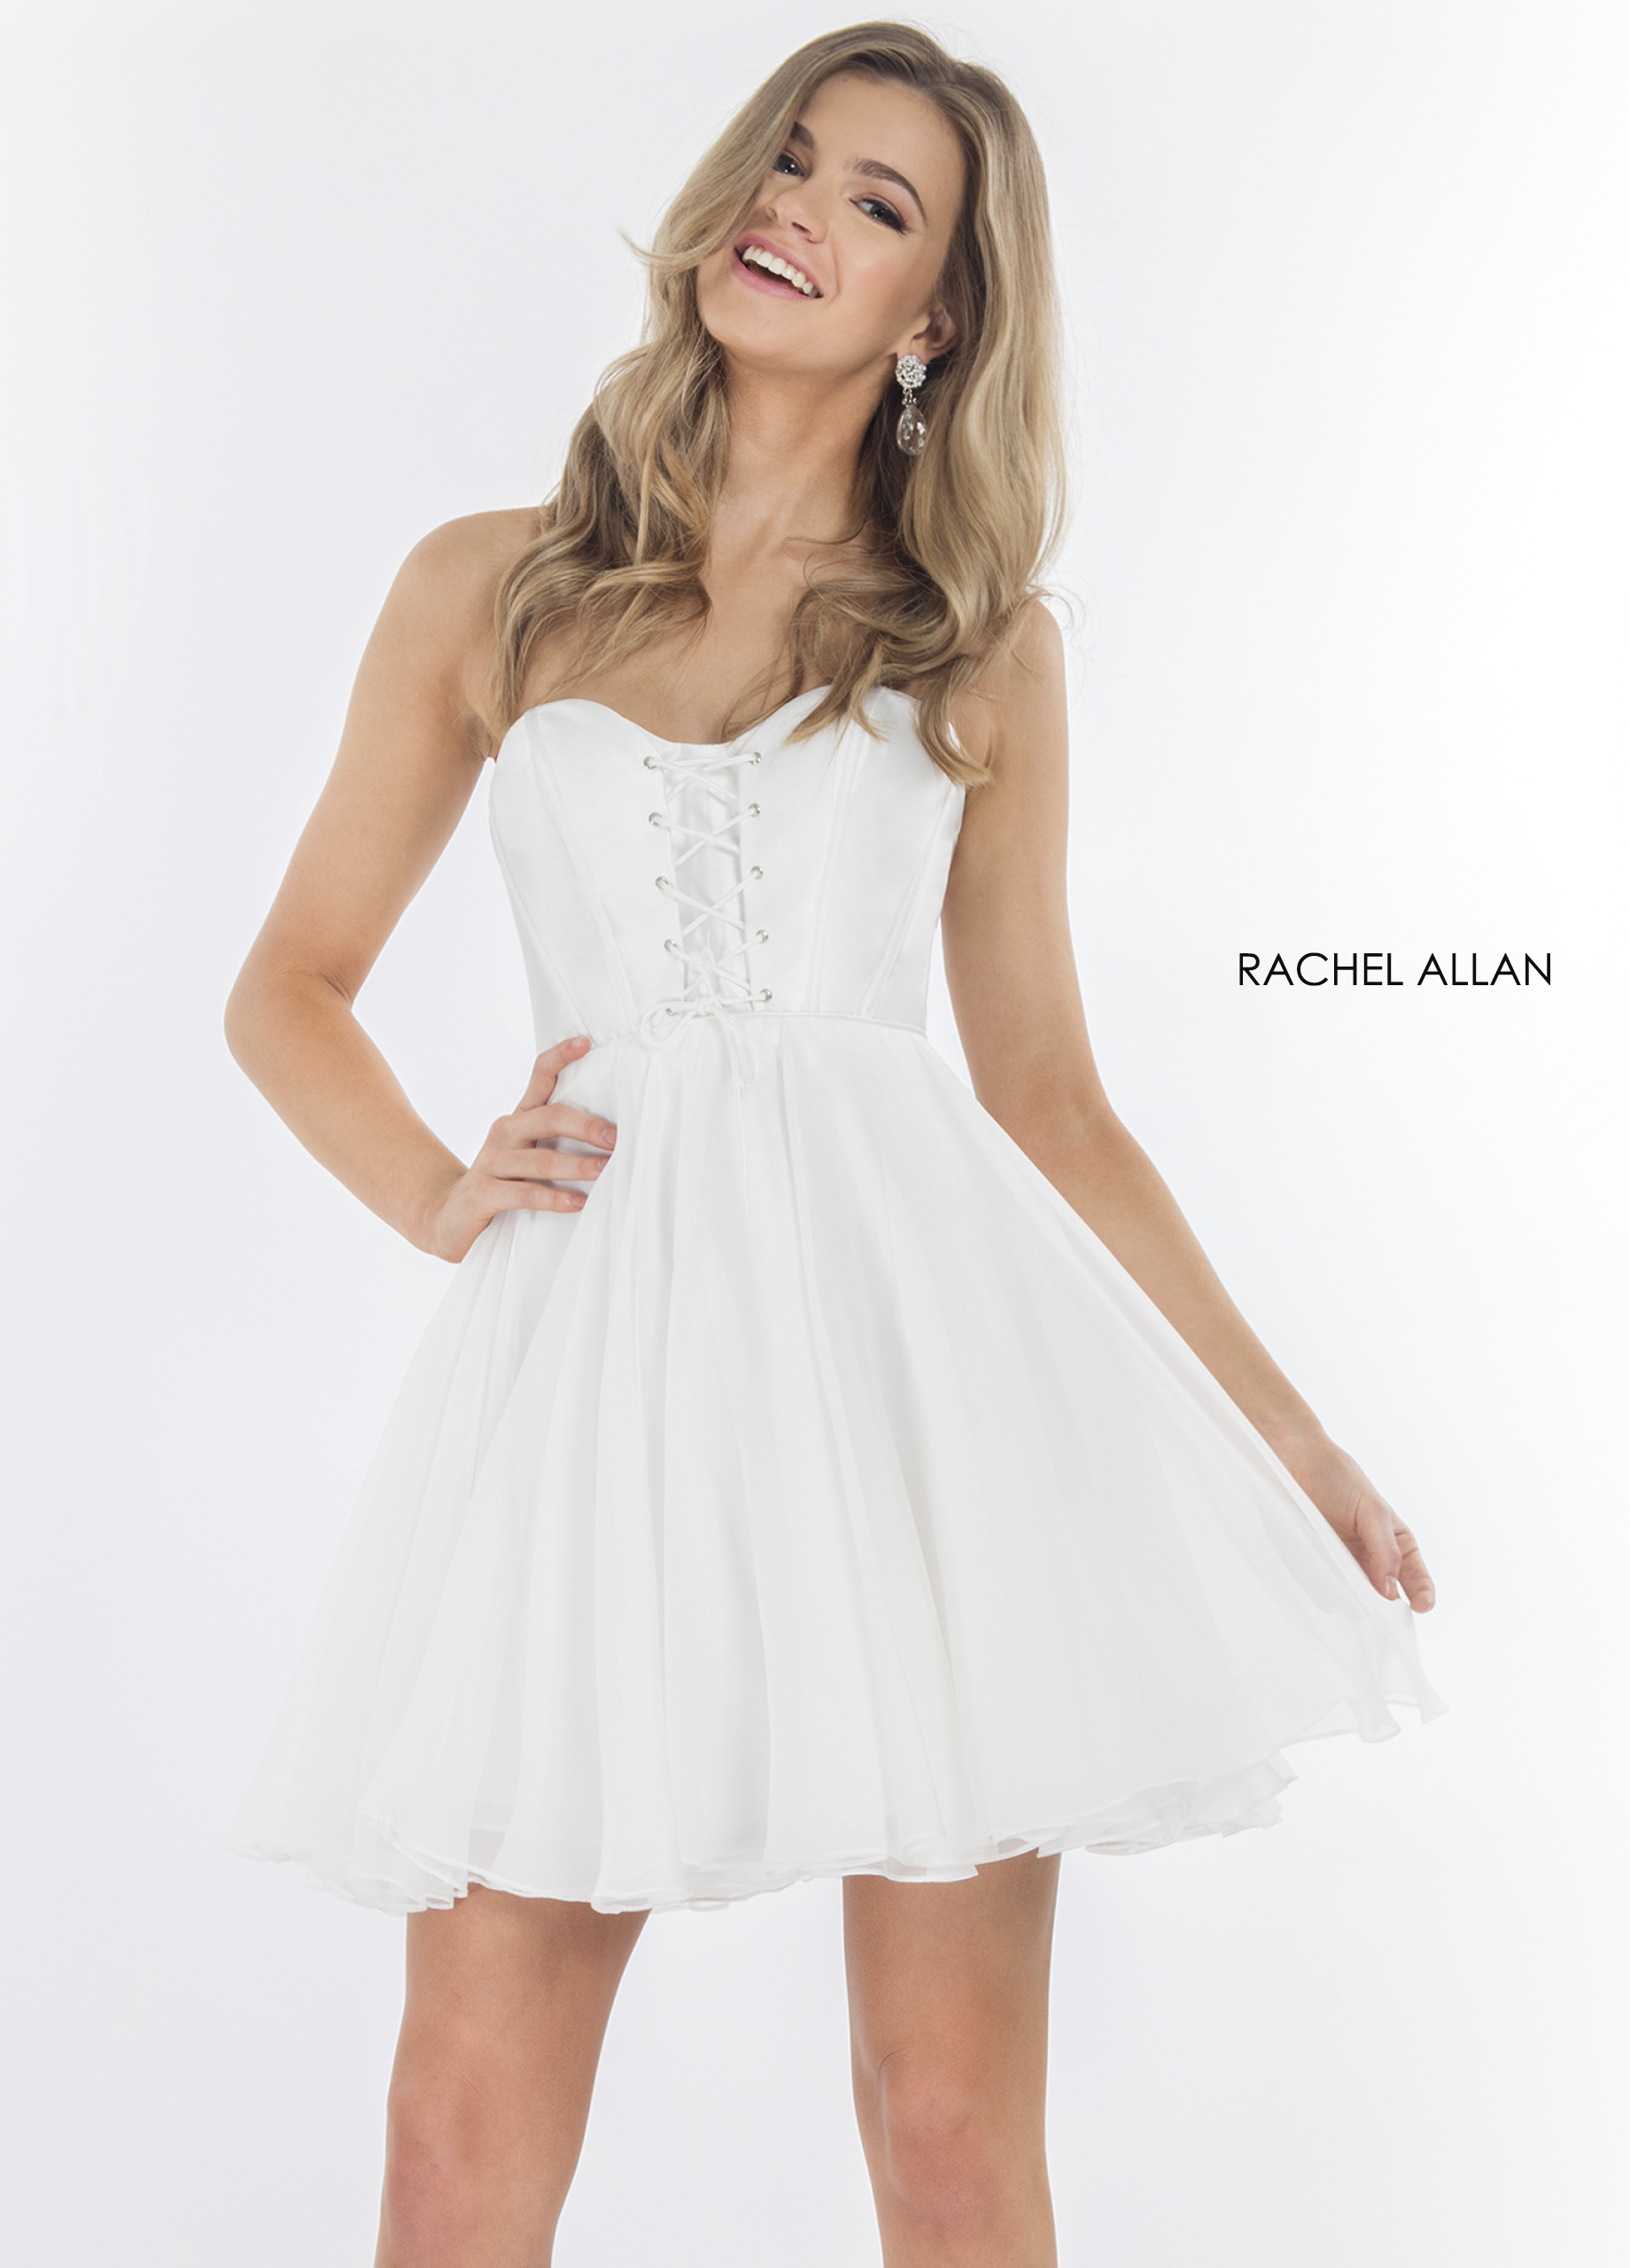 Strapless Fit & Flare Cocktail Dresses in White Color